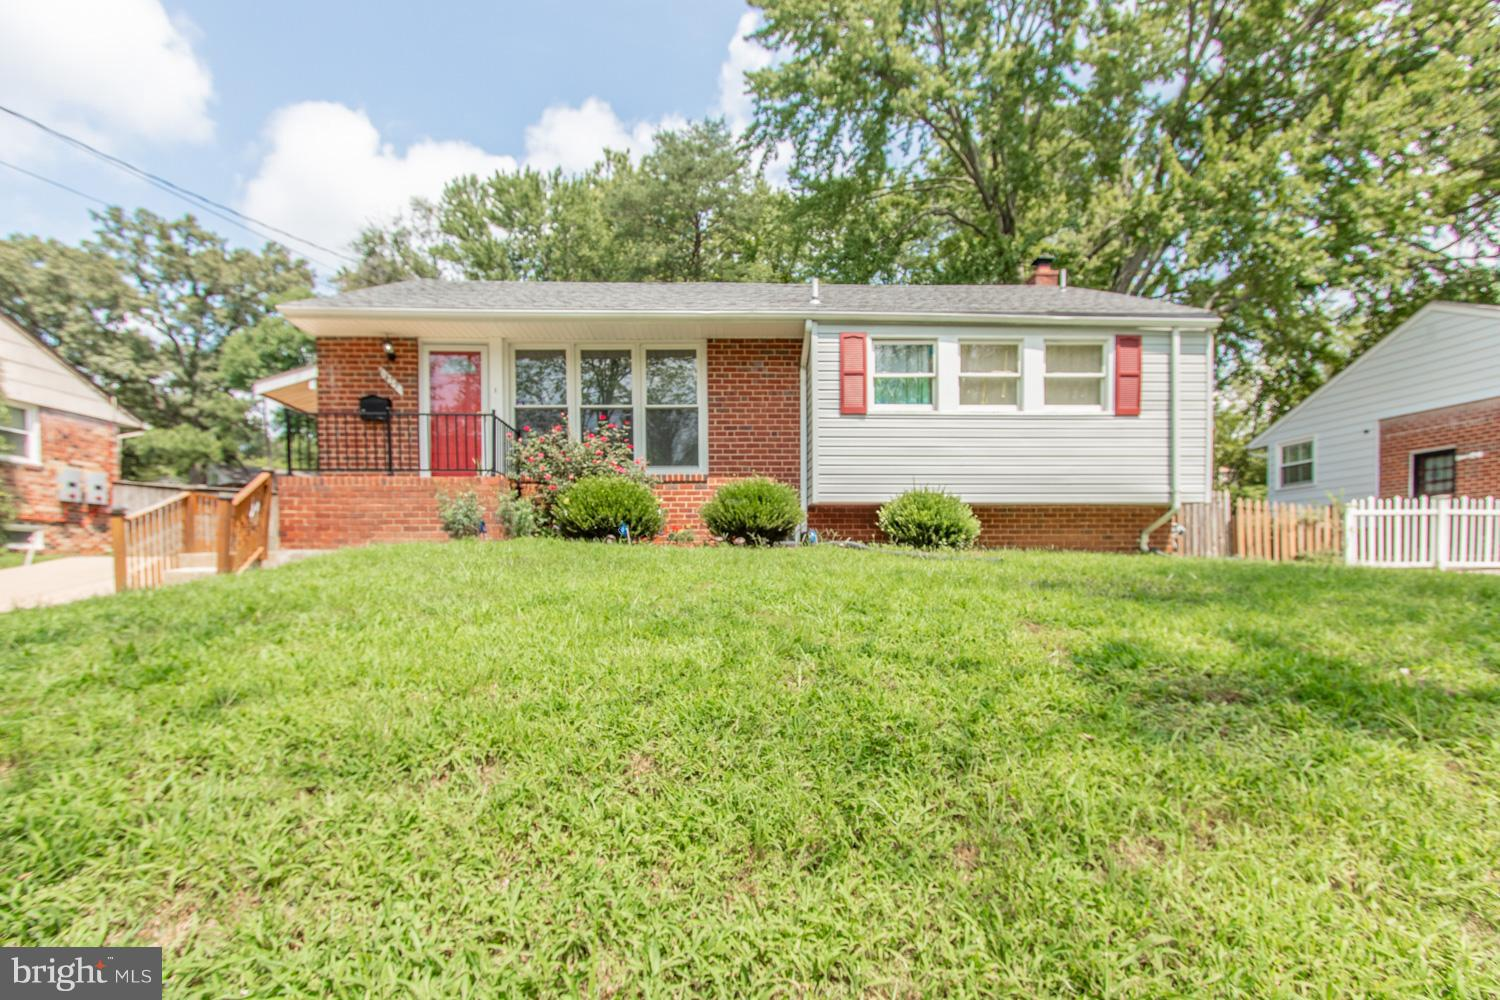 6425 JODIE STREET, NEW CARROLLTON, MD 20784